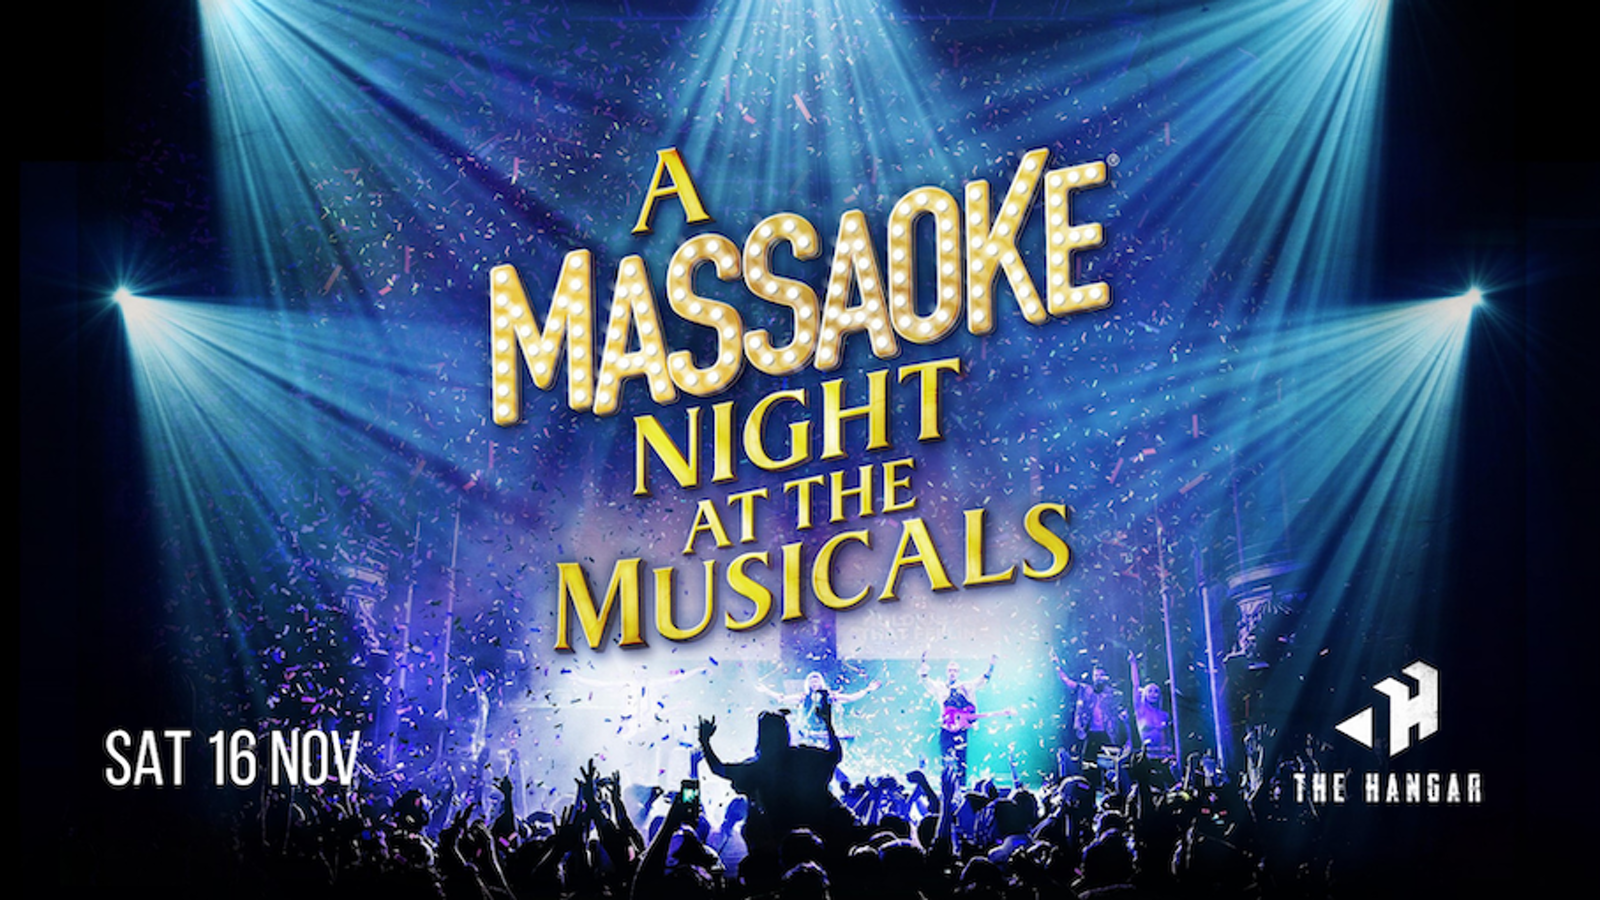 Massaoke: Night at the Musicals